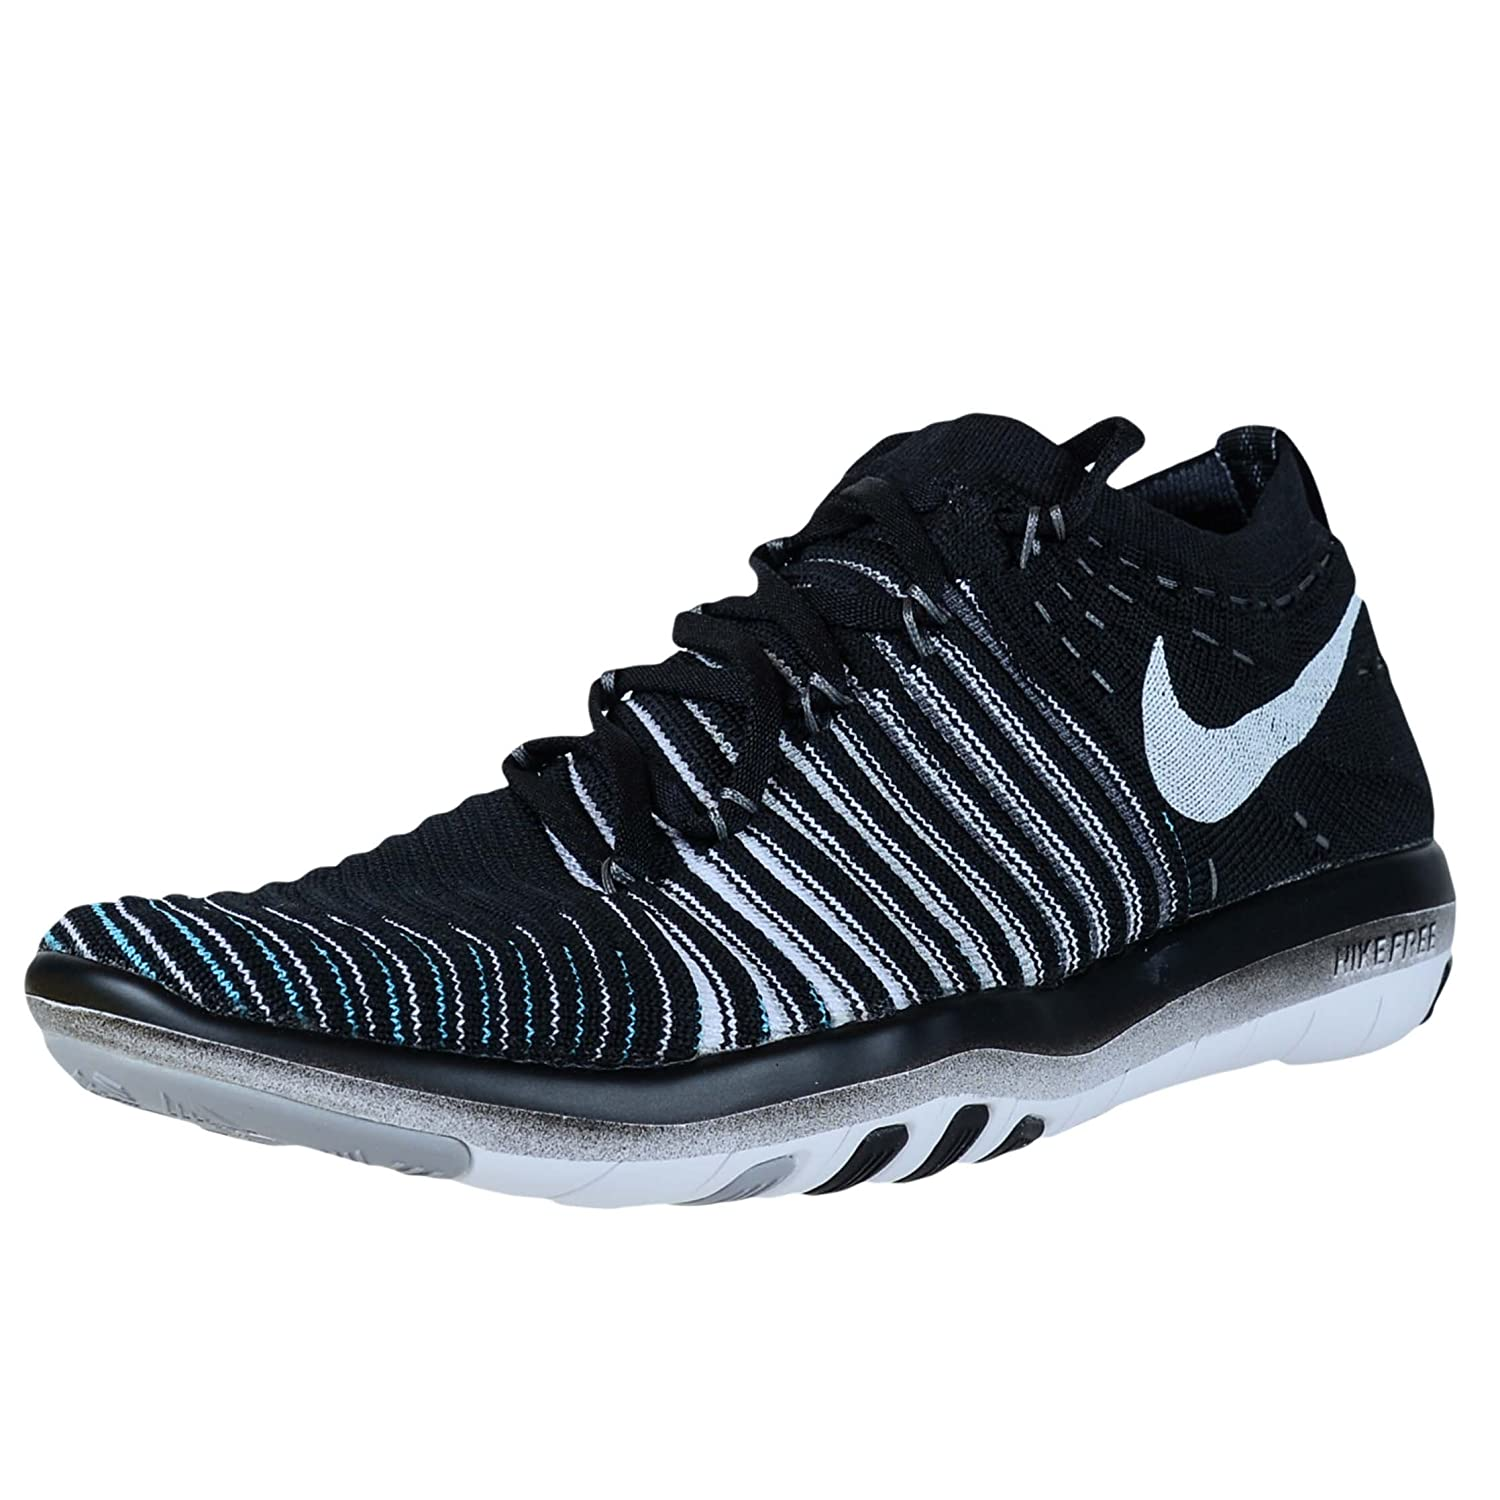 Nike Women s Wm Free Transform Flyknit Gymnastics Shoes  Amazon.co.uk  Shoes    Bags bc7db2328